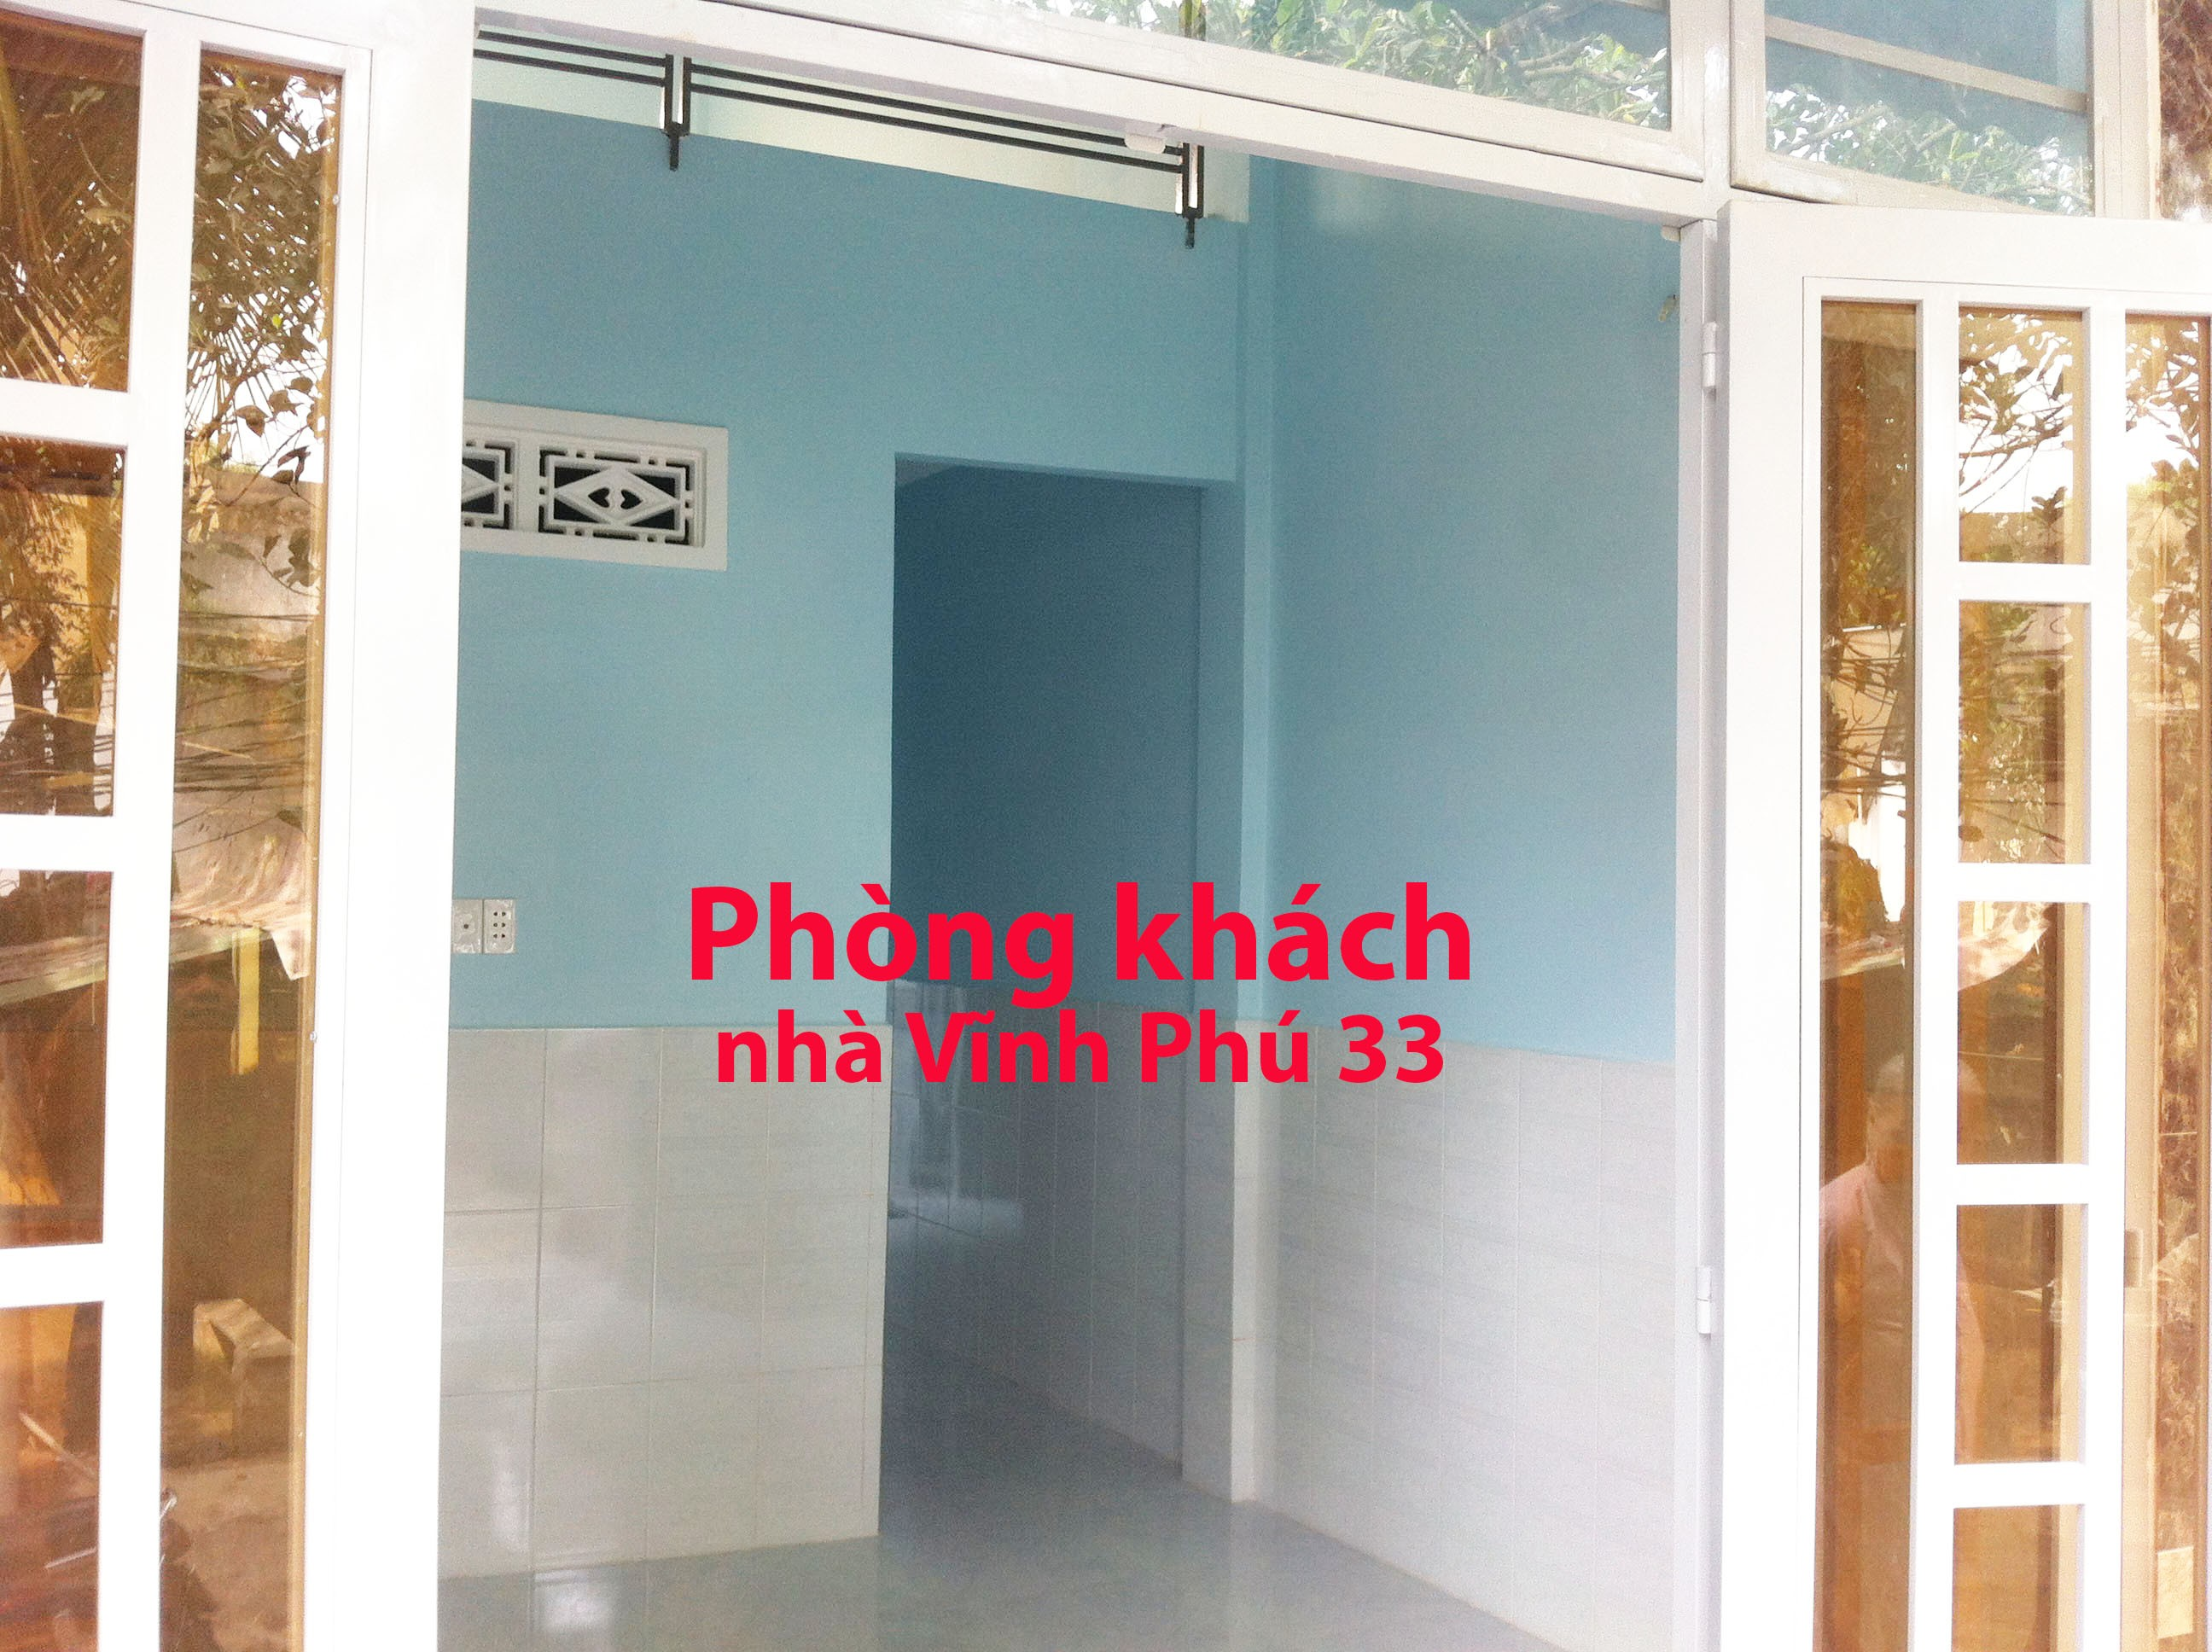 1 Nh mi xy cho thu Vnh Ph 33 Loan 0938748270